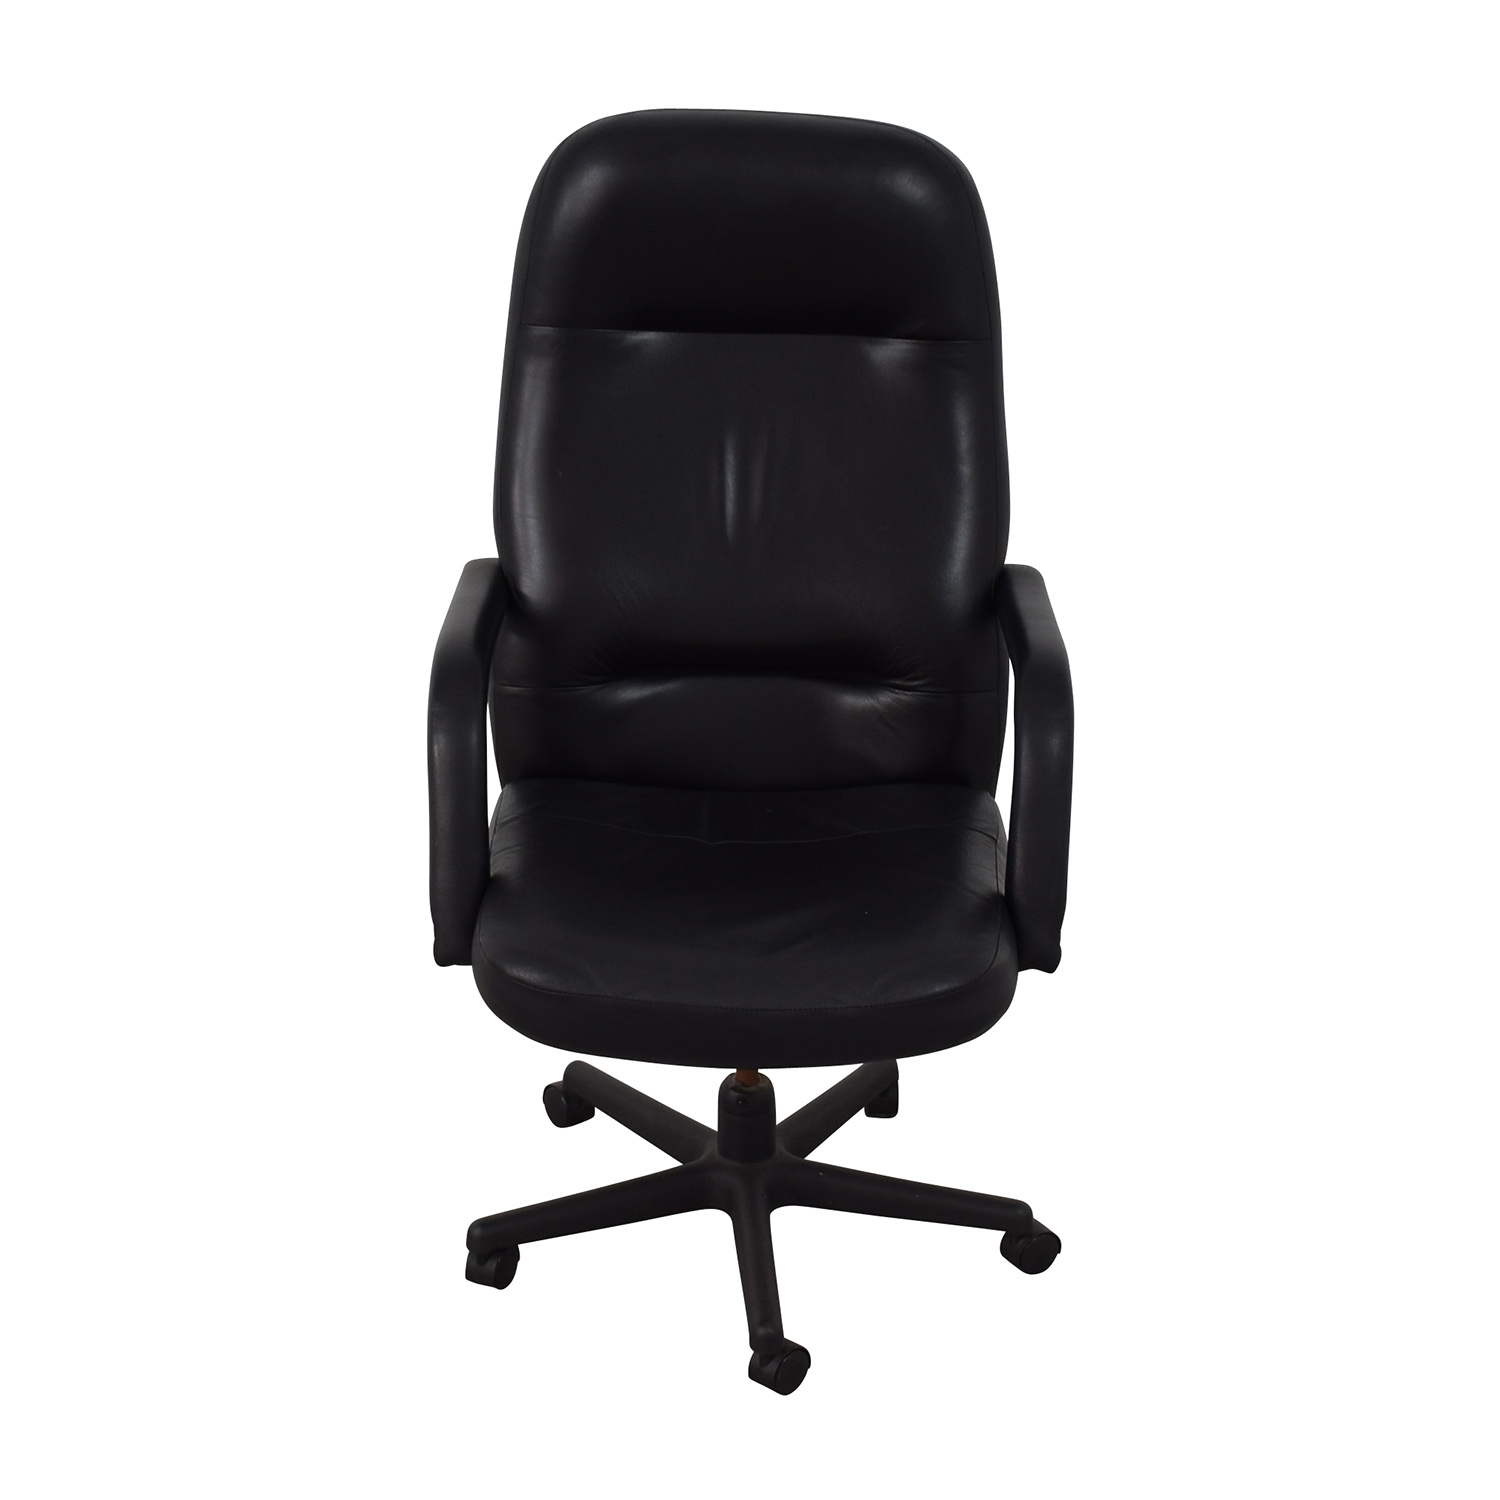 Black Leather Conference Room Chair Black